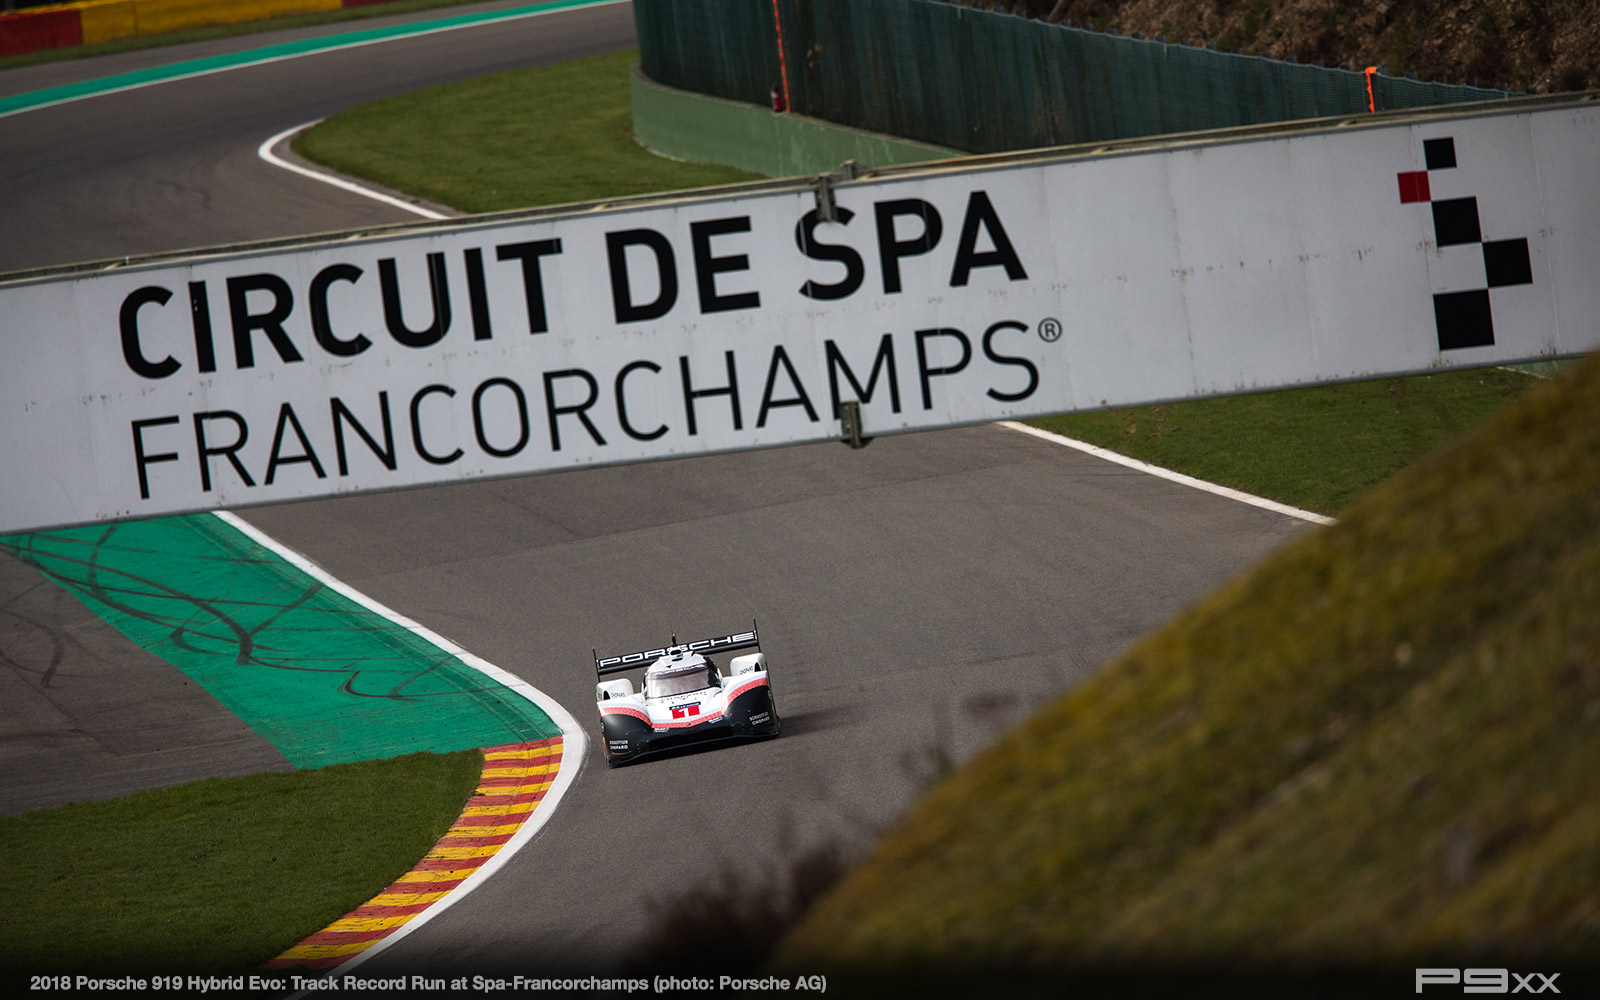 2018-porsche-919-evo-tribute-spa-francorchamps-480